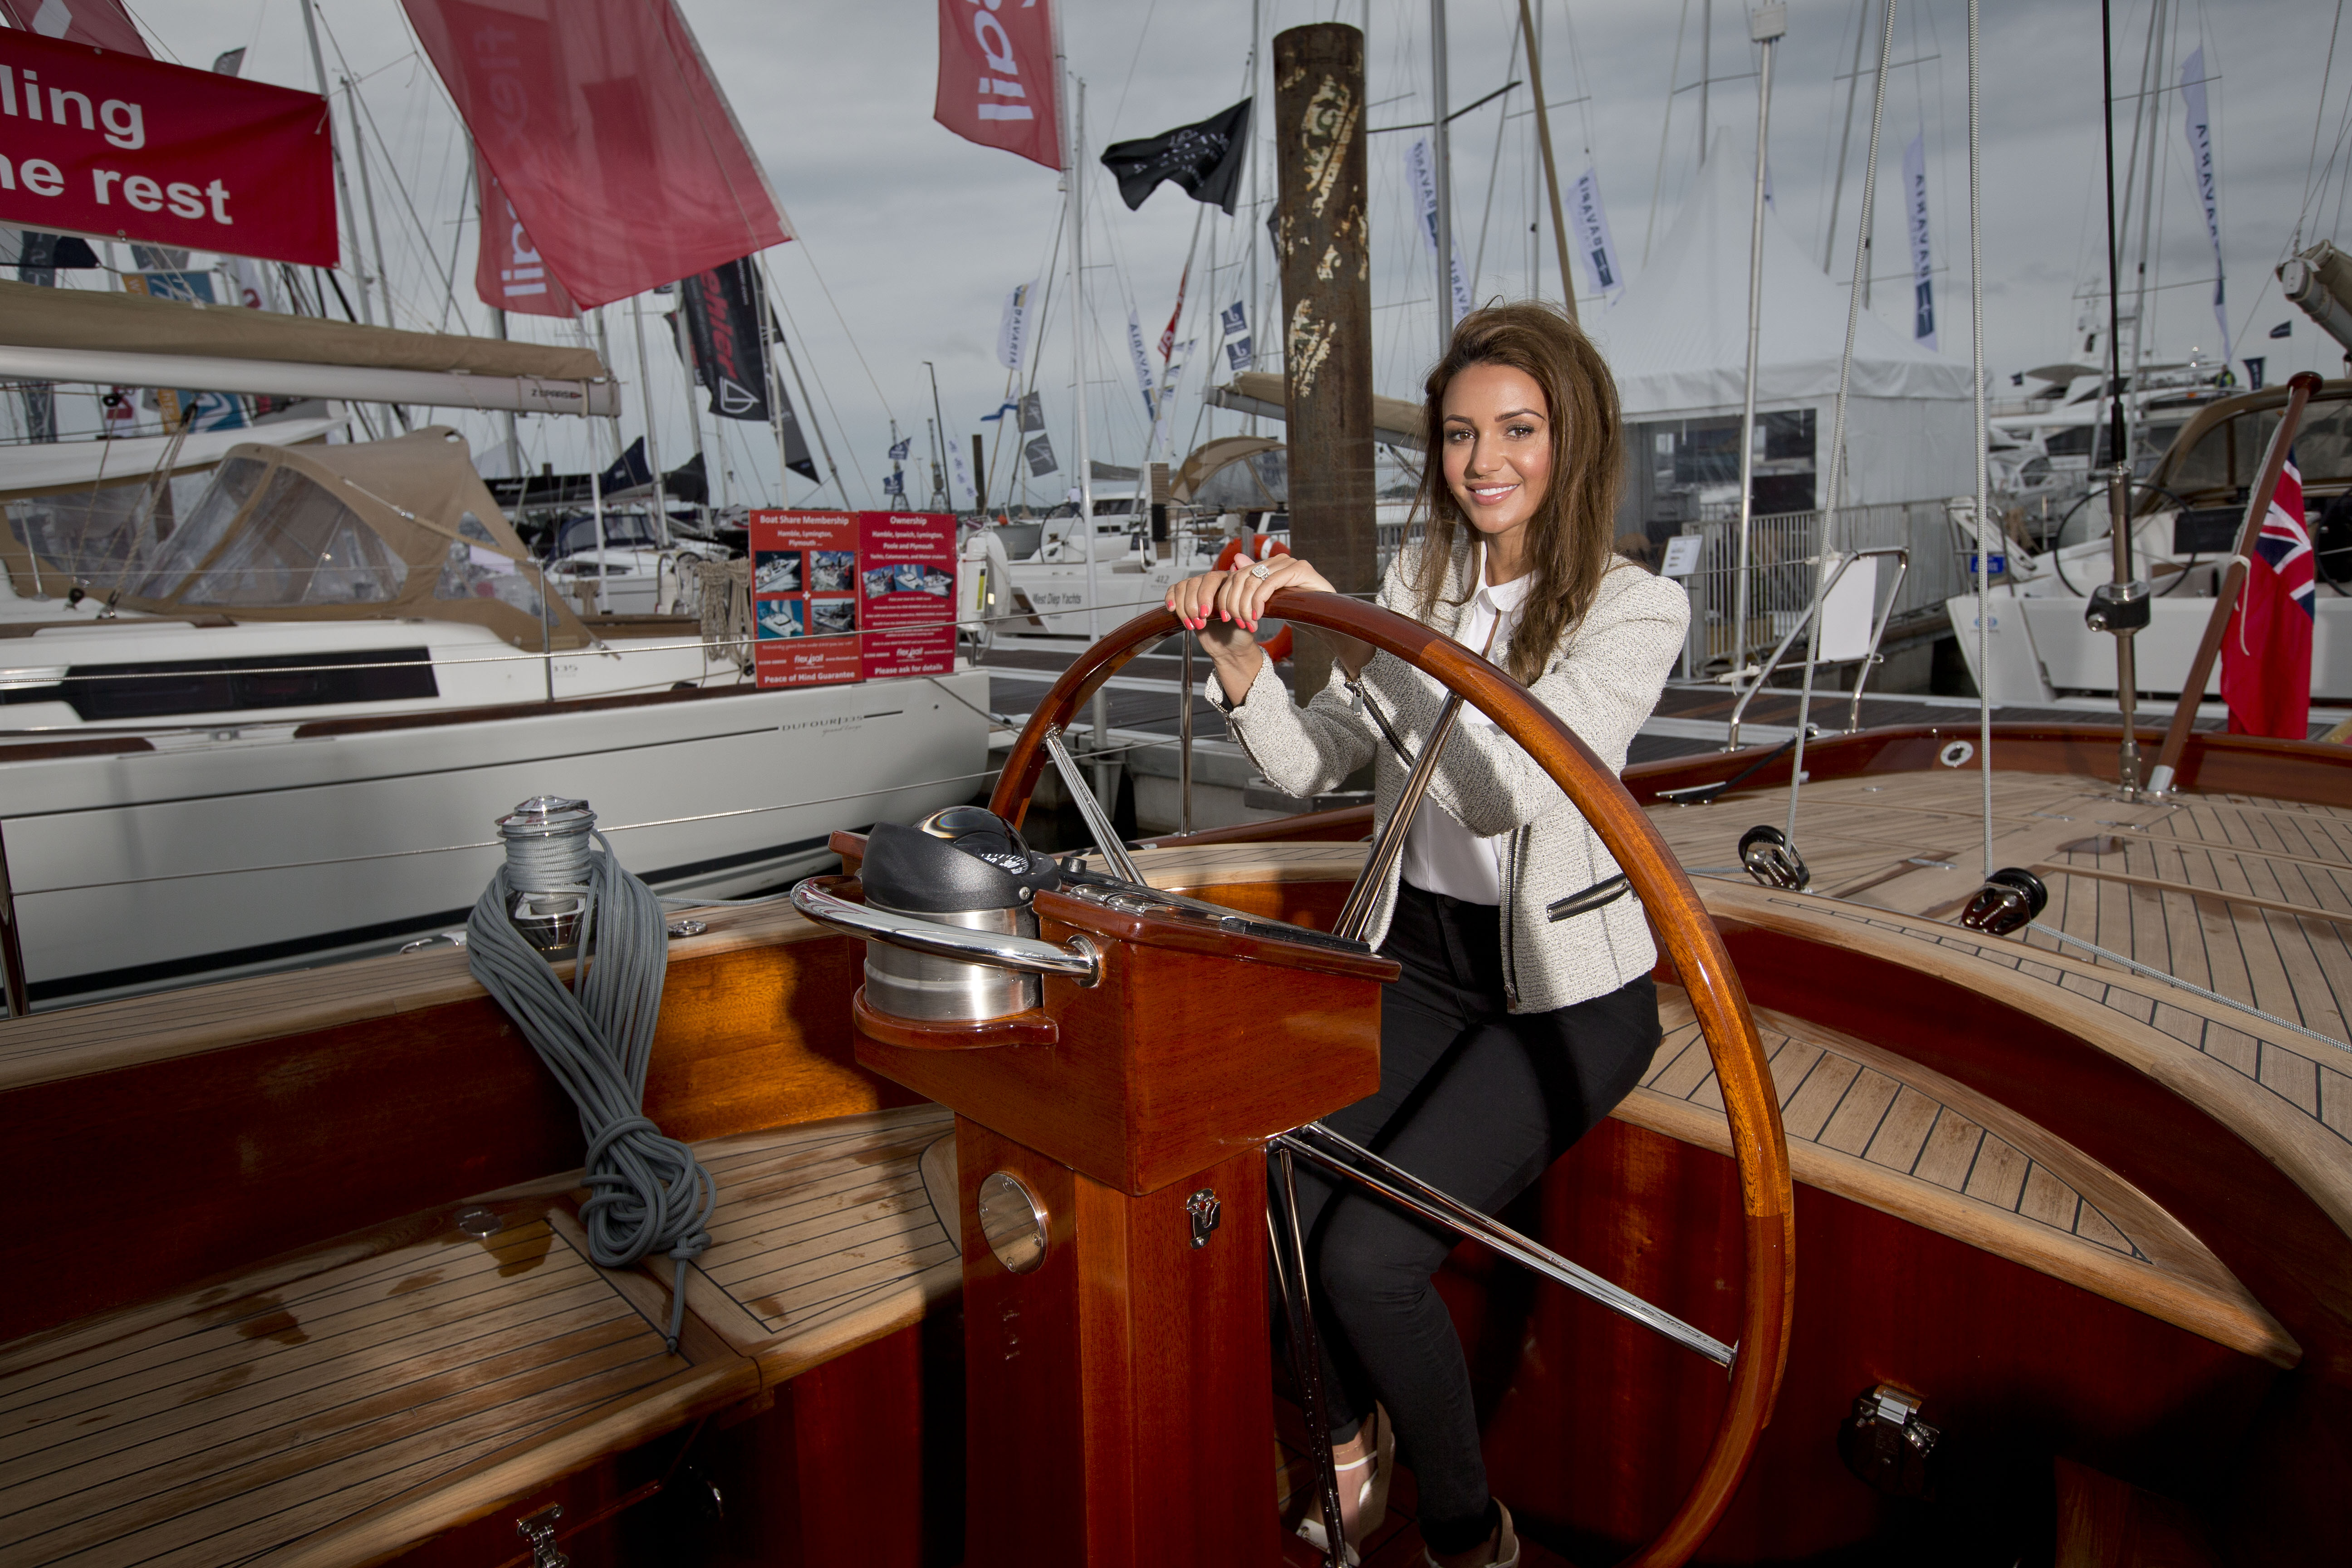 20150916 Copyright onEdition 2015©  Free for editorial use image. Michelle Keegan opens the Southampton Boat Show on Press Day. The 16-25 September 2016 marks a unique date in the boating calendar, the 48th Southampton Boat Show. The festival of boating, will host over 131 boat debuts; close to 600 exhibiting brands Ð 27 of which are new for 2016 and hundreds of boats on display, including 330 on the ShowÕs stunning Marina, powered by Kube, which is one of EuropeÕs largest purpose-built marinas with over 2km of pontoons. Ê Throughout the Show, visitors can marvel at boats ranging from £300 Stand Up Paddleboards to aspirational multi-million pound luxury yachts. The wide variety of attractions this year include the Artemis tall ship; The Festival Stage, powered by Datatag and the COMPASS scheme, which will feature fashion shows and live music; the Royal Navy Parachute Display Team; spectacular air displays from two Spitfire & Hurricane aircrafts and MarlinÕs Charity Mission. Ê There are plenty of ways to get out on the water at the Show with On The WaterÕs Get Afloat Ð a way for 8-16 year olds to learn about boating and watersports for free; On The WaterÕs Try-a-Boat Ð which gives visitors unique experiences onboard the latest RIBs and luxury yachts; Bumper Boats, sponsored by Sunseeker in support of Macmillan Cancer Trust Ð suitable for children aged 3-13; Wet Wheels - a 9m Cheetah Catamaran that has been specially adapted for wheelchair access; the Suzuki RIB Experience which offers a fantastic chance to get out on the water in a 7.8m RIB; the Global Challenges Sailing Experience on board a 72ft Round the World Ocean Race Yacht and the luxurious Platinum Experience ticket package which includes a trip out on a luxury motor yacht. Ê Special events during the 10-day event include Careers Day when the Show will be putting on activities to promote marine careers and apprenticeships; Ladies Day, sponsored by Irwin Mitchell, to celebrate the women leading the world of sailing and working in the marine industry; a Guinness World Record Attempt which will attempt to break the Guinness World Record for the ÔLargest human image of a boatÕ; the Battle of the Classes Pursuit Race and Honda RYA Youth RIB Championship National Final. This image has been supplied by onEdition and must be credited onEdition. The author is asserting his full Moral rights in relation to the publication of this image. All rights reserved. Rights for onward transmission of any image or file is not granted or implied. Changing or deleting Copyright information is illegal as specified in the Copyright, Design and Patents Act 1988. If you are in any way unsure of your right to publish this image please contact onEdition on 0845 900 2 900 or email Info@onEdition.com20150916 Copyright onEdition 2015©  Free for editorial use image. Michelle Keegan opens the Southampton Boat Show on Press Day. The 16-25 September 2016 marks a unique date in the boating calendar, the 48th Southampton Boat Show. The festival of boating, will host over 131 boat debuts; close to 600 exhibiting brands Ð 27 of which are new for 2016 and hundreds of boats on display, including 330 on the ShowÕs stunning Marina, powered by Kube, which is one of EuropeÕs largest purpose-built marinas with over 2km of pontoons. Ê Throughout the Show, visitors can marvel at boats ranging from £300 Stand Up Paddleboards to aspirational multi-million pound luxury yachts. The wide variety of attractions this year include the Artemis tall ship; The Festival Stage, powered by Datatag and the COMPASS scheme, which will feature fashion shows and live music; the Royal Navy Parachute Display Team; spectacular air displays from two Spitfire & Hurricane aircrafts and MarlinÕs Charity Mission. Ê There are plenty of ways to get out on the water at the Show with On The WaterÕs Get Afloat Ð a way for 8-16 year olds to learn about boating and watersports for free; On The WaterÕs Try-a-Boat Ð which gives visitors unique experiences onboard the latest RIBs and luxury yachts; Bumper Boats, sponsored by Sunseeker in support of Macmillan Cancer Trust Ð suitable for children aged 3-13; Wet Wheels - a 9m Cheetah Catamaran that has been specially adapted for wheelchair access; the Suzuki RIB Experience which offers a fantastic chance to get out on the water in a 7.8m RIB; the Global Challenges Sailing Experience on board a 72ft Round the World Ocean Race Yacht and the luxurious Platinum Experience ticket package which includes a trip out on a luxury motor yacht. Ê Special events during the 10-day event include Careers Day when the Show will be putting on activities to promote marine careers and apprenticeships; Ladies Day, sponsored by Irwin Mitchell, to celebrate the women leading the world of sailing and working in the marine industry; a Guinness World Record Attempt which will attempt to break the Guinness World Record for the ÔLargest human image of a boatÕ; the Battle of the Classes Pursuit Race and Honda RYA Youth RIB Championship National Final. This image has been supplied by onEdition and must be credited onEdition. The author is asserting his full Moral rights in relation to the publication of this image. All rights reserved. Rights for onward transmission of any image or file is not granted or implied. Changing or deleting Copyright information is illegal as specified in the Copyright, Design and Patents Act 1988. If you are in any way unsure of your right to publish this image please contact onEdition on 0845 900 2 900 or email Info@onEdition.com